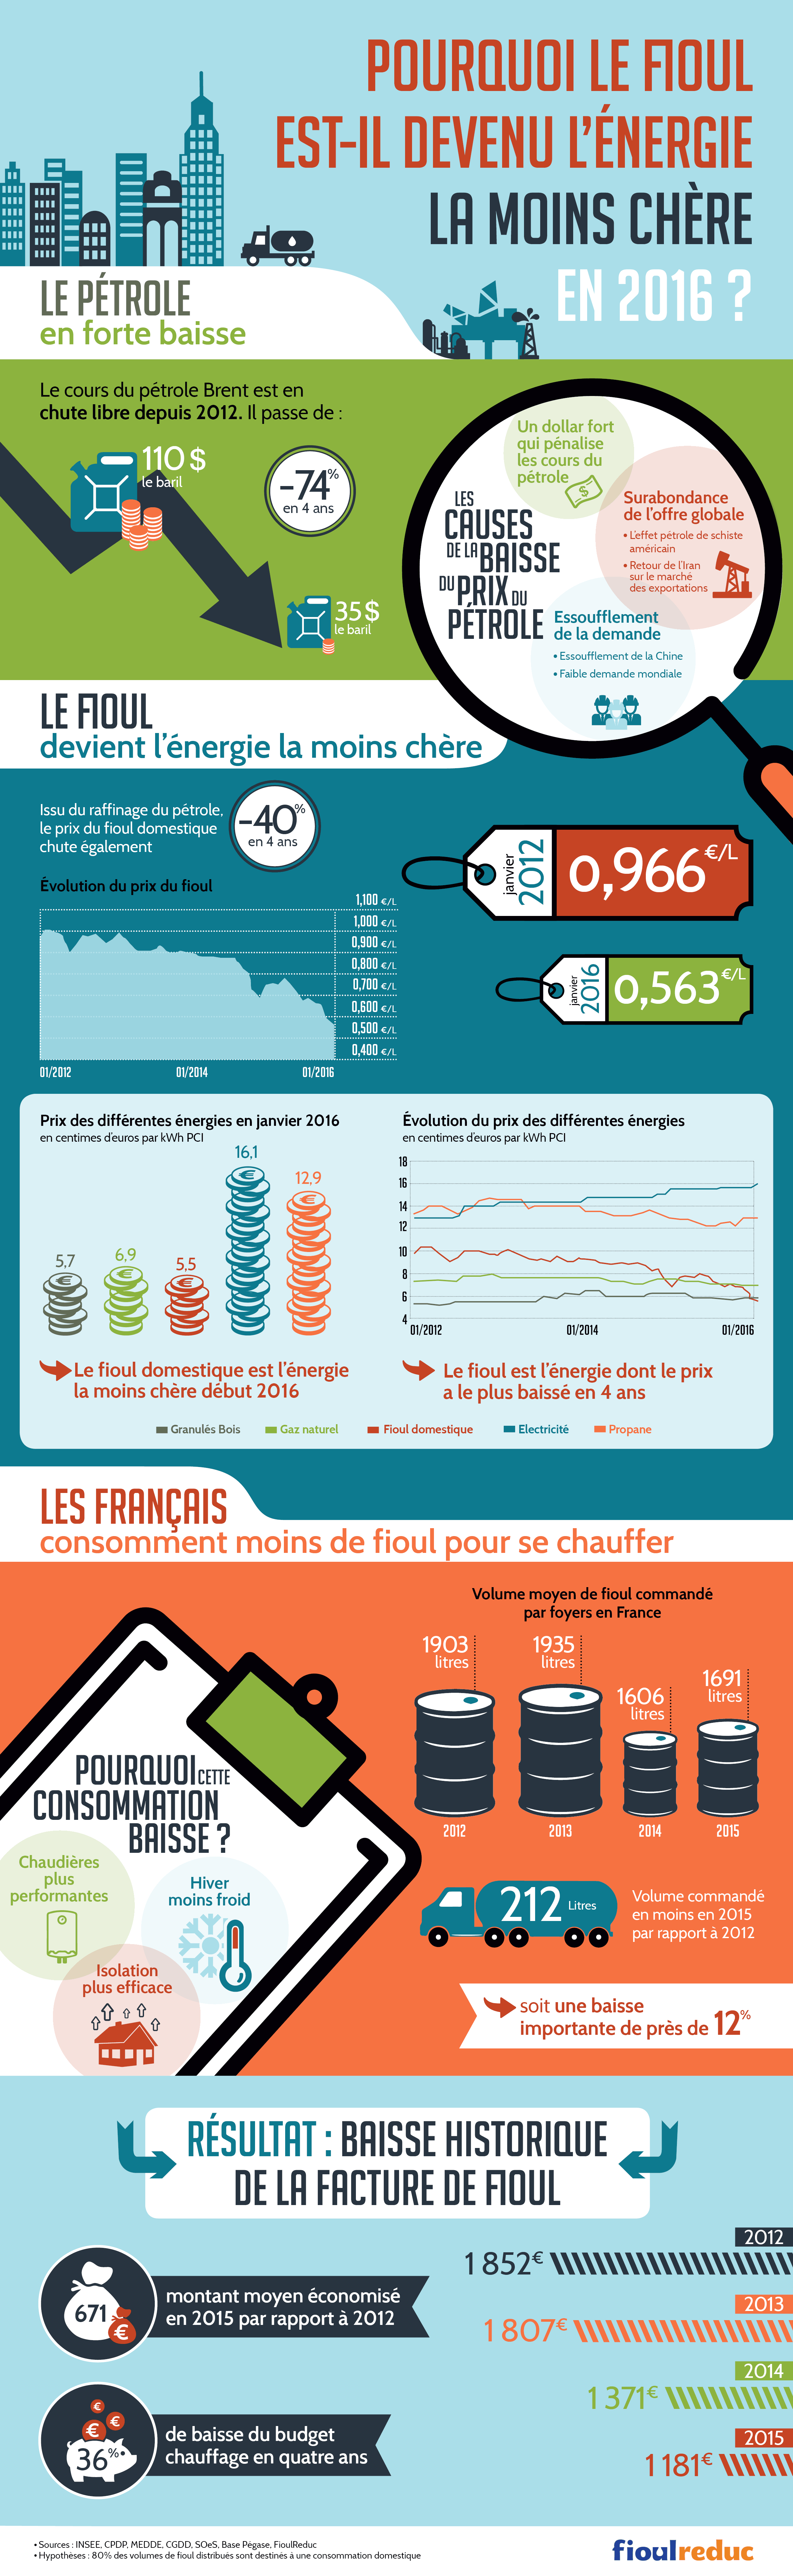 infographie_fioulereduc_fioul_energie_moins_chere_2016